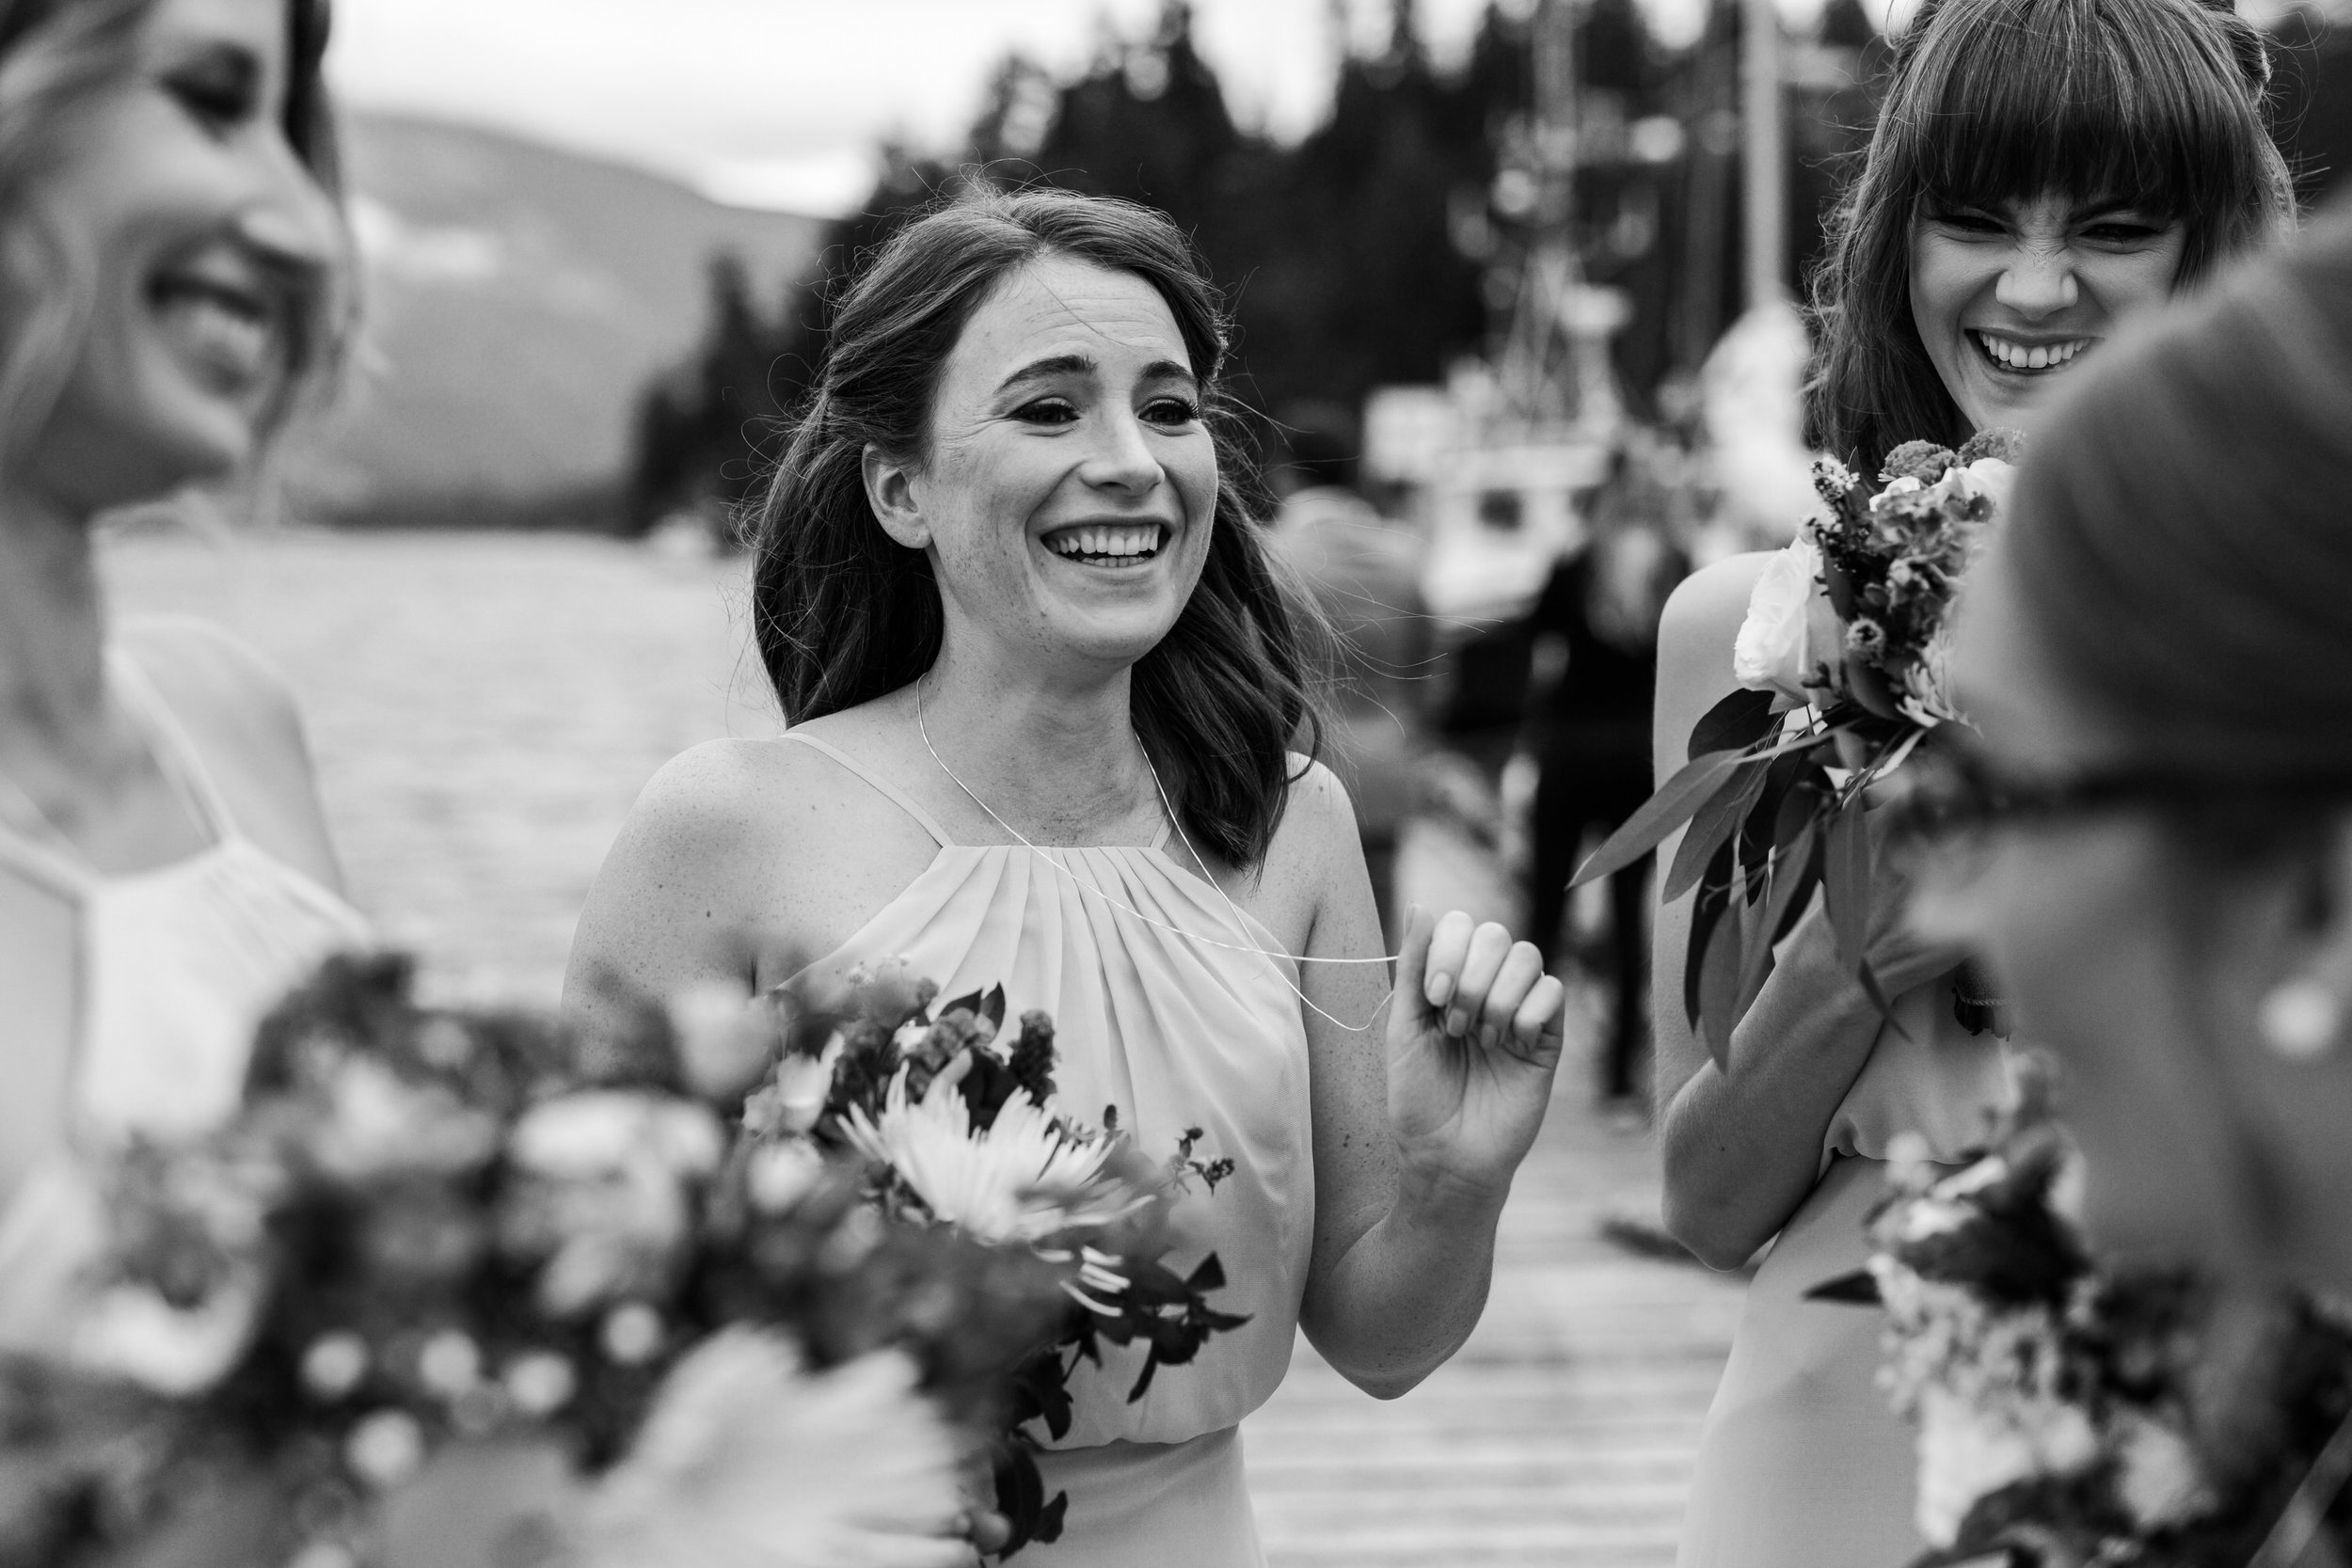 West Coast Wilderness Lodge Wedding Photos - Vancouver Wedding Photographer & Videographer - Sunshine Coast Wedding Photos - Sunshine Coast Wedding Photographer - Jennifer Picard Photography - IMG_6036.jpg